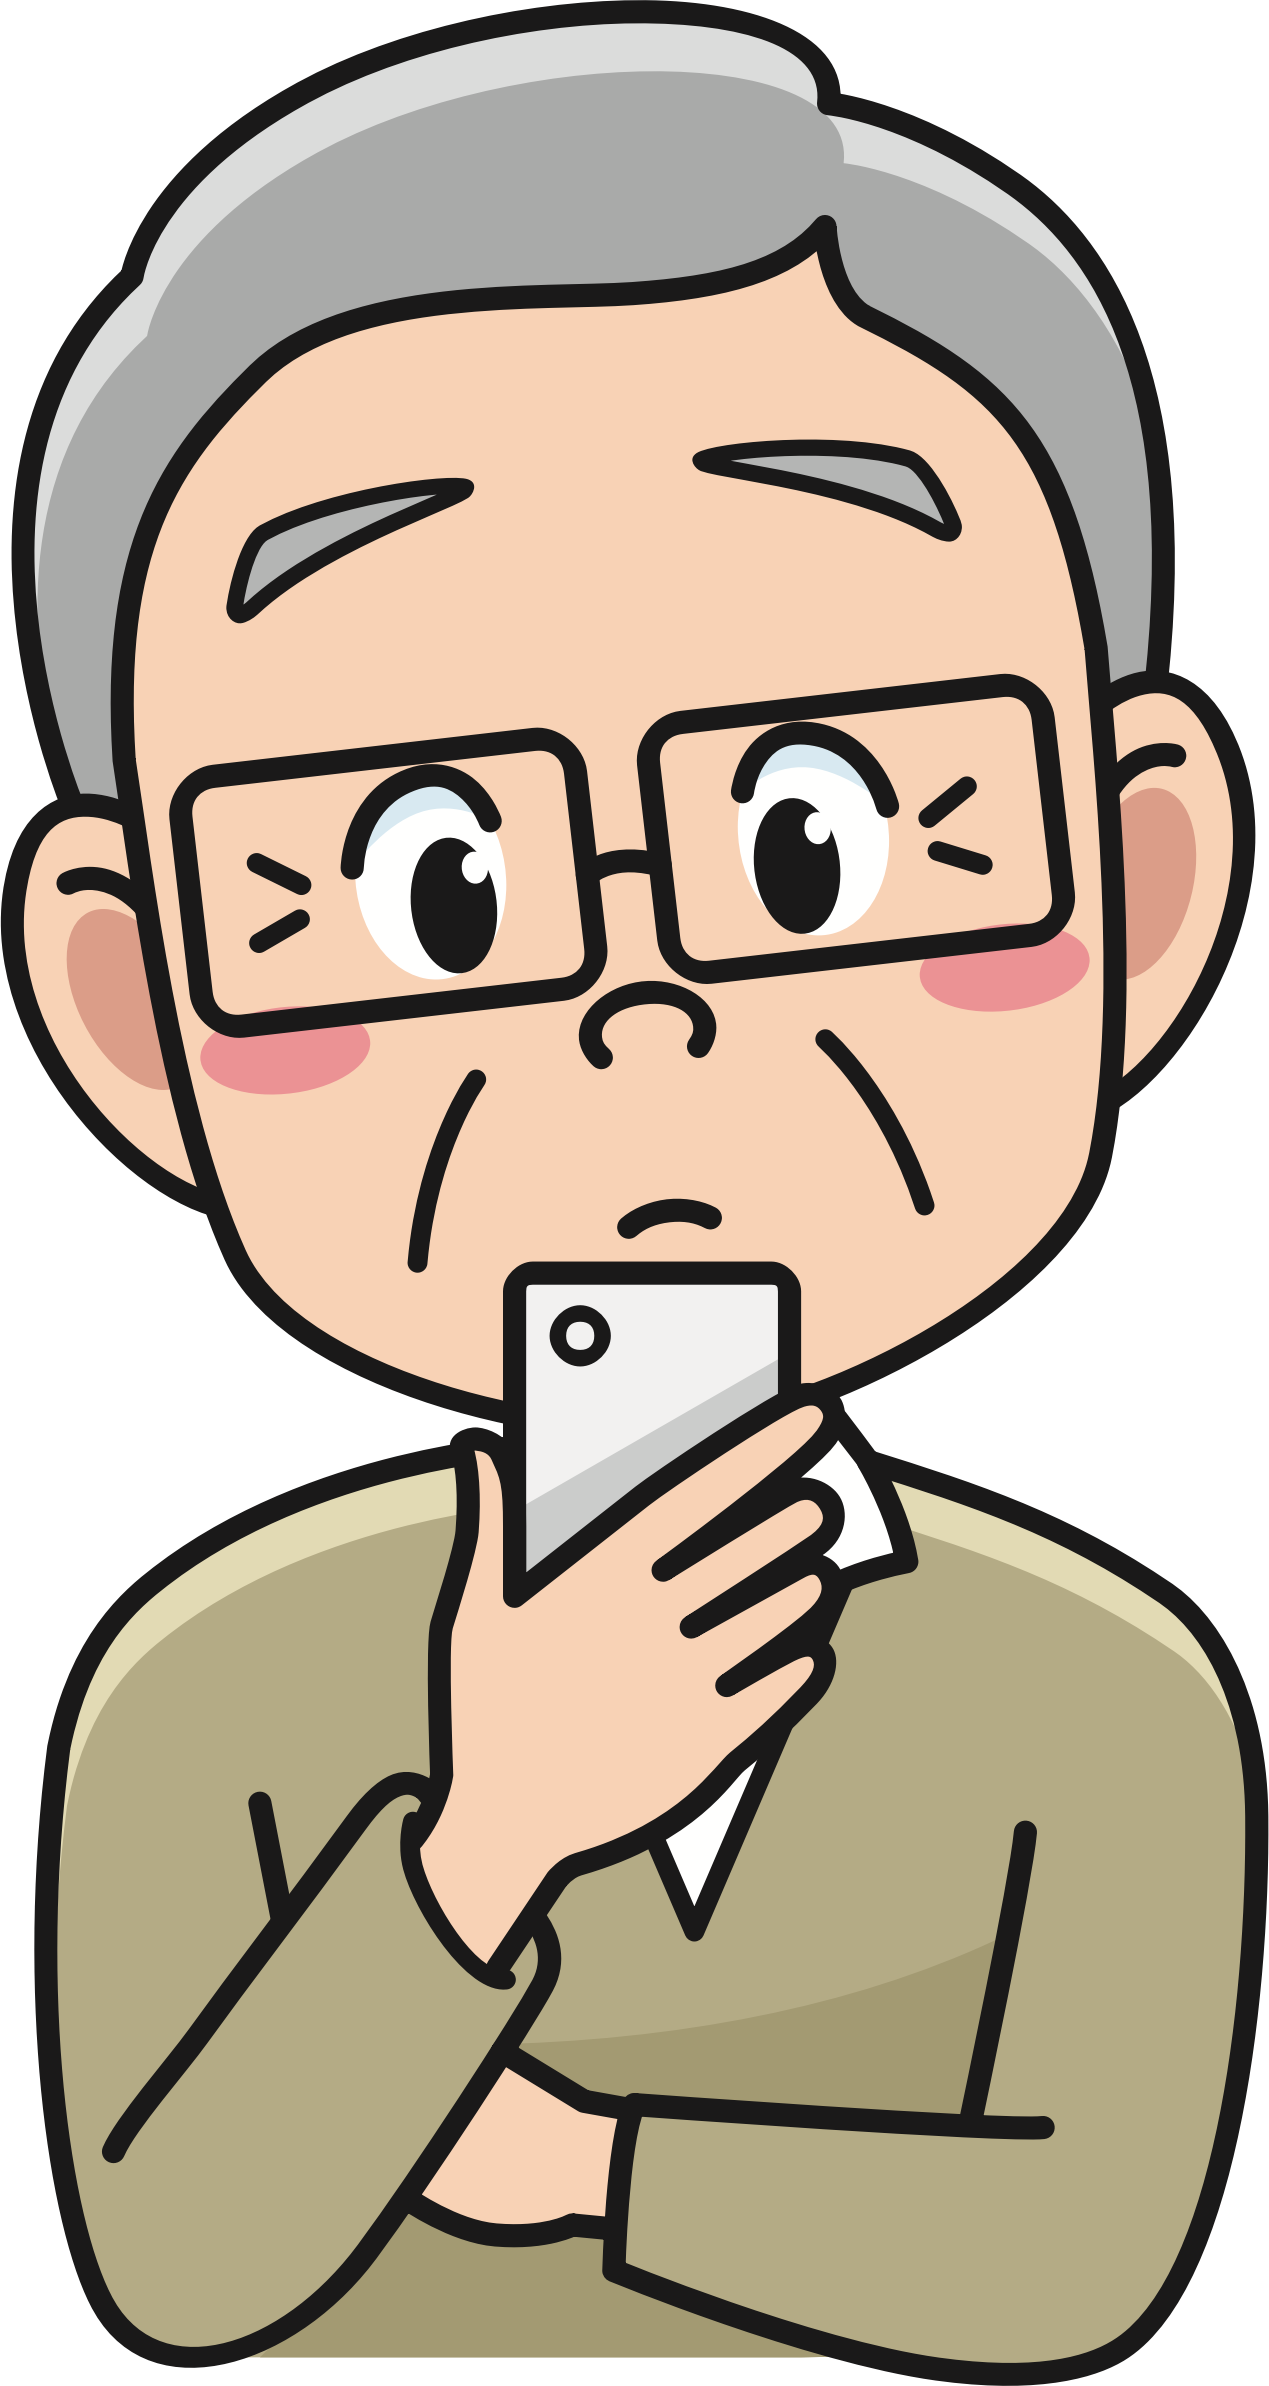 Telephone clipart man. Senior with smartphone big